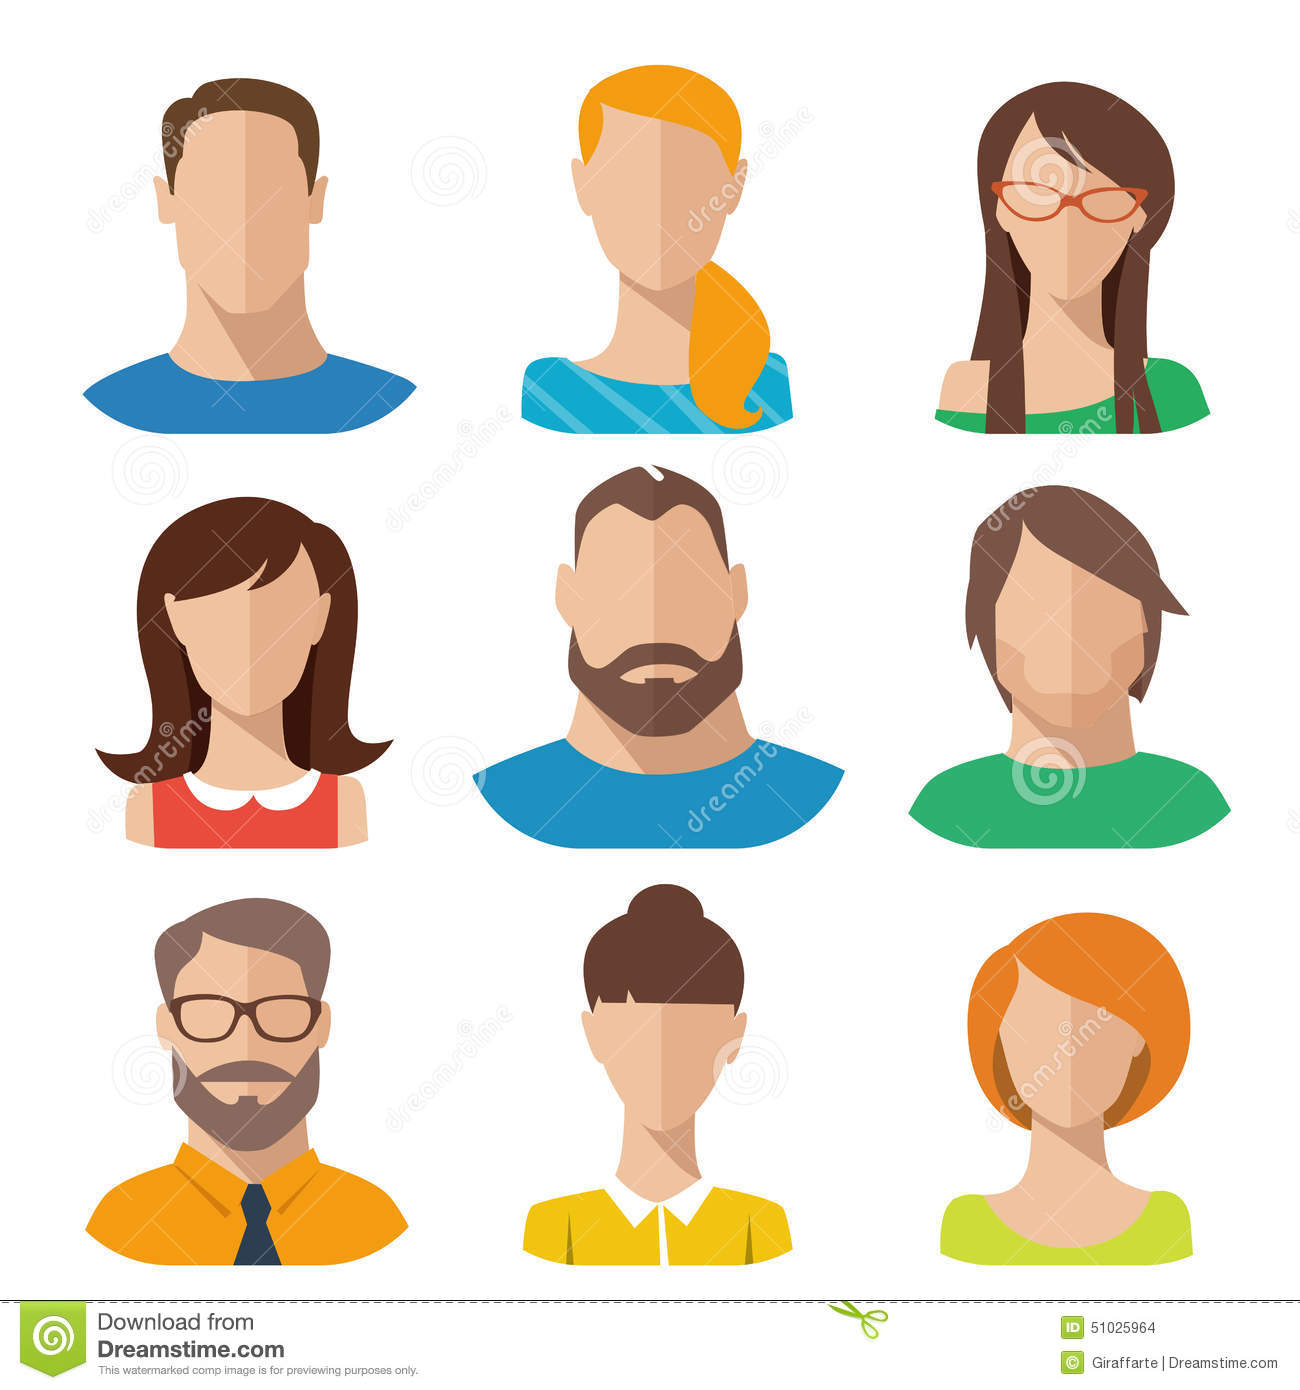 Flat Vector Characters Stock Vector. Illustration Of Hair